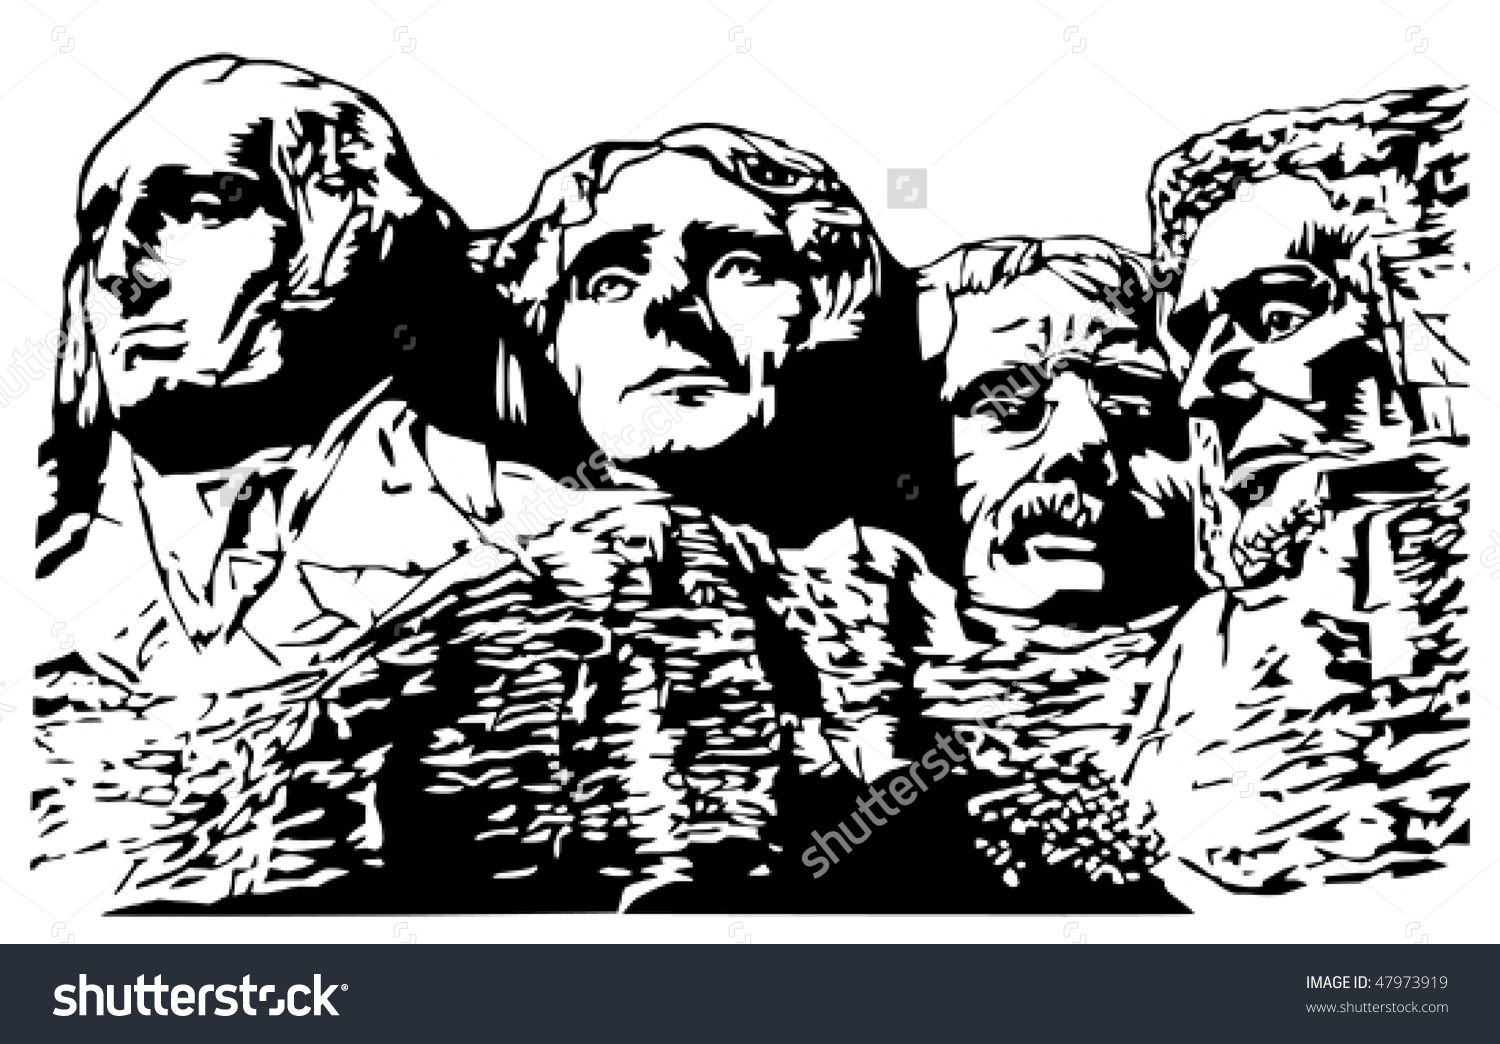 Mt Rushmore Stock Vector 47973919.